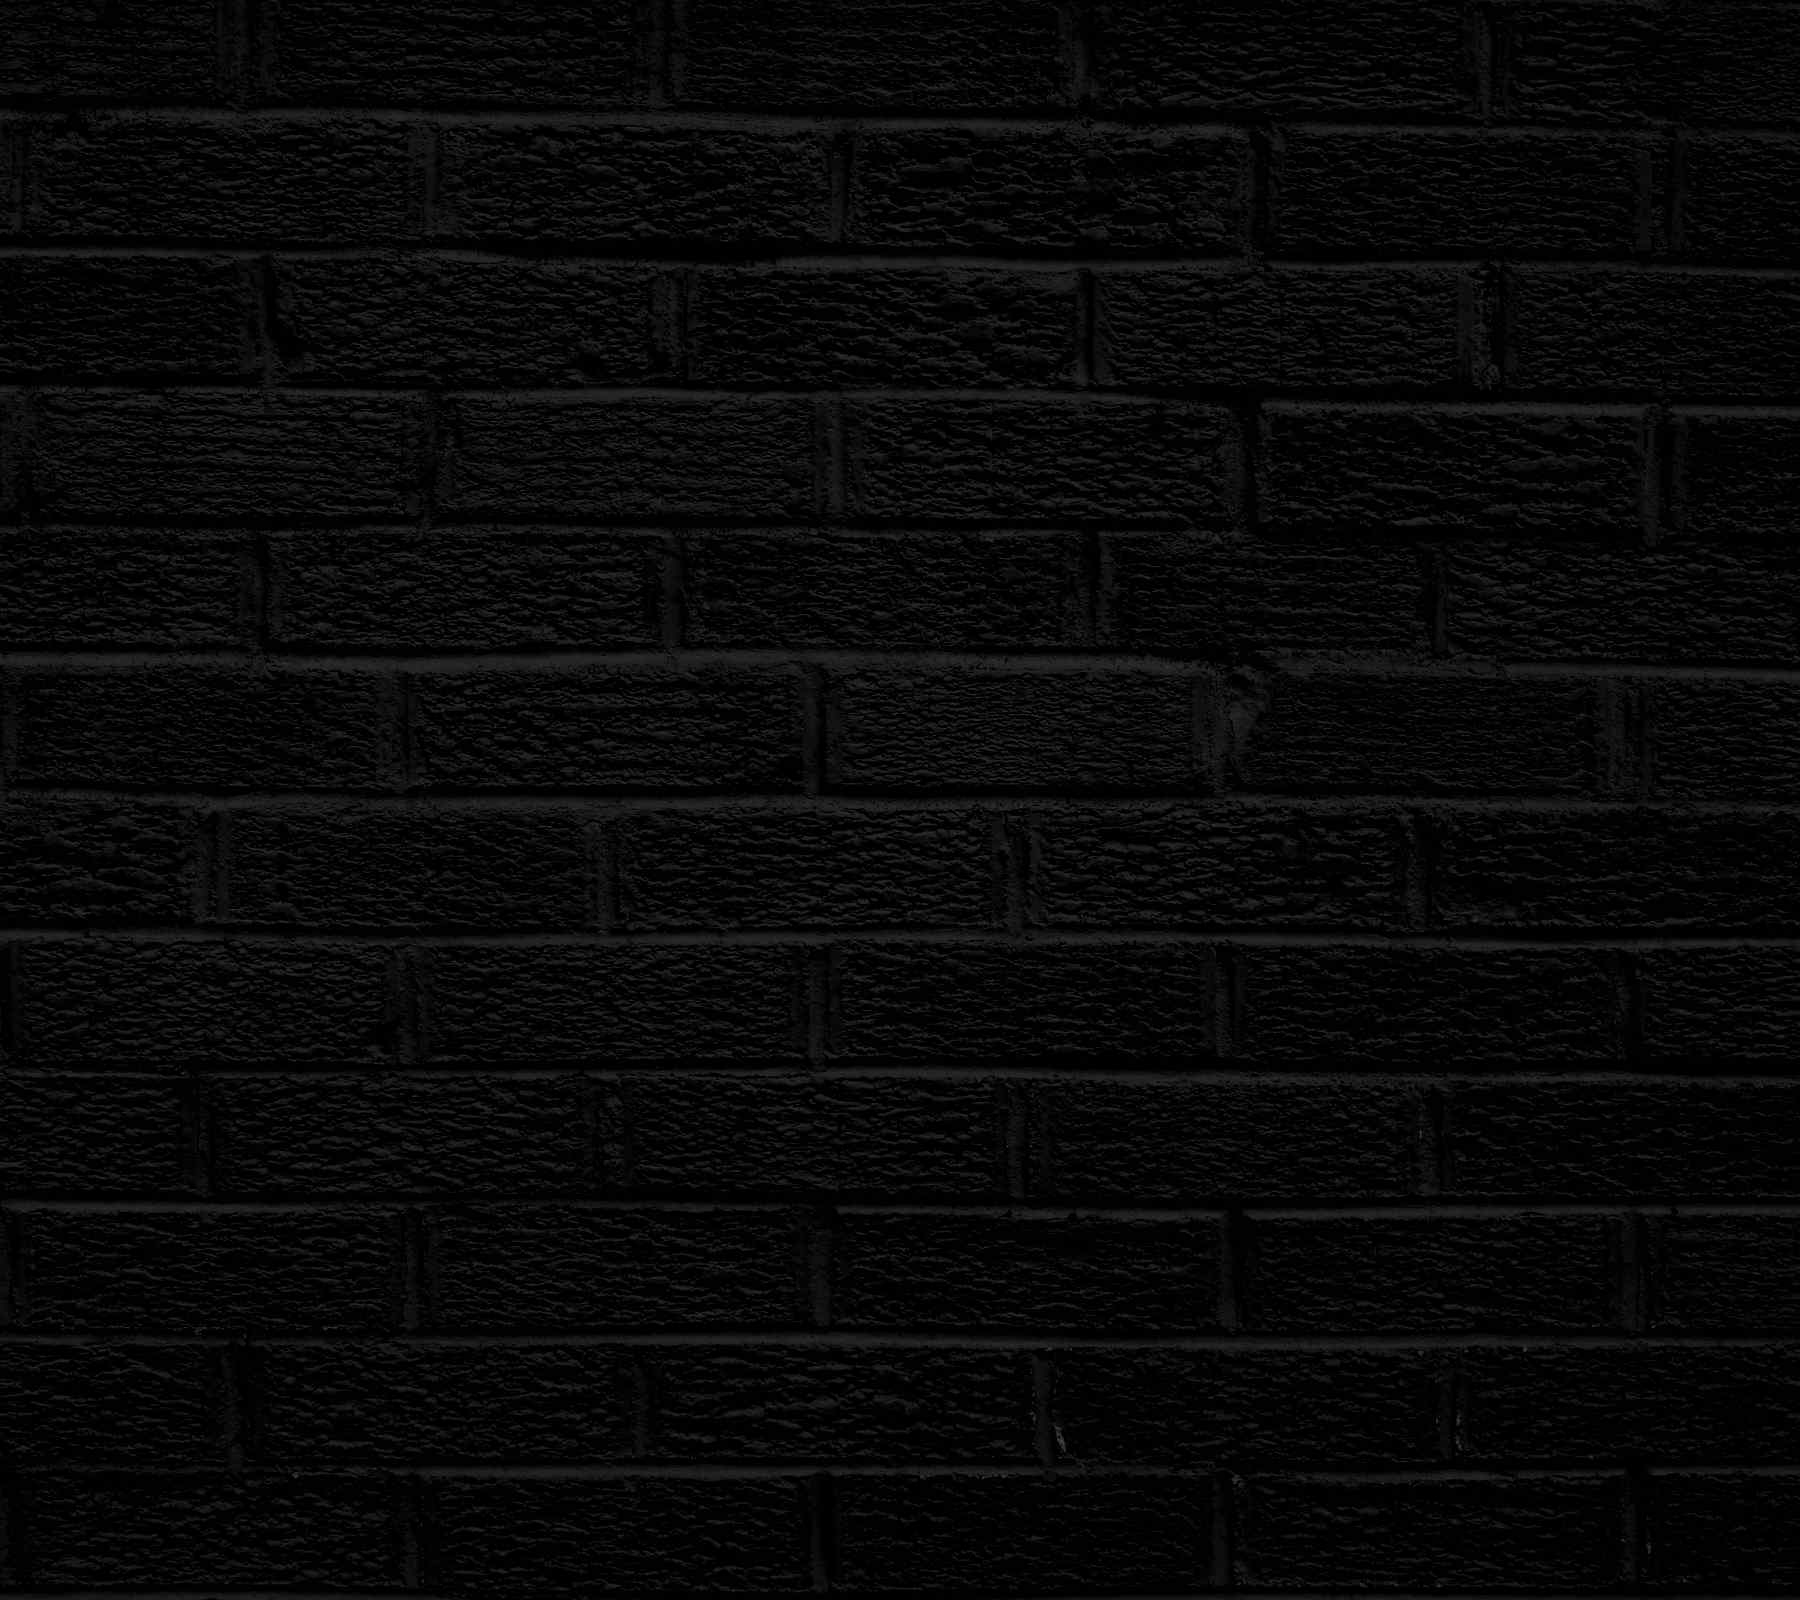 black brick wall background 1800x1600 background image